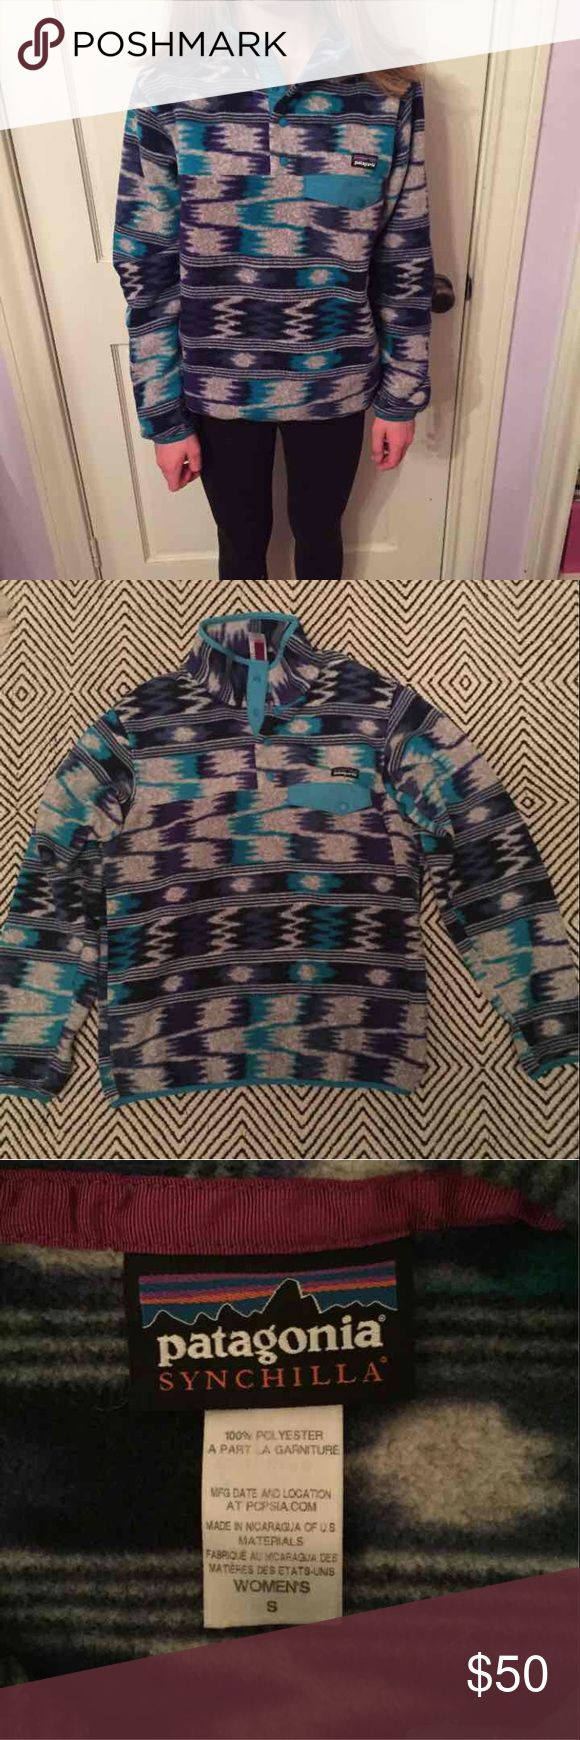 Patagonia synchilla jacket Lightly worn, in great condition, super comfy and soft!! Great deal!!! Patagonia Jackets & Coats